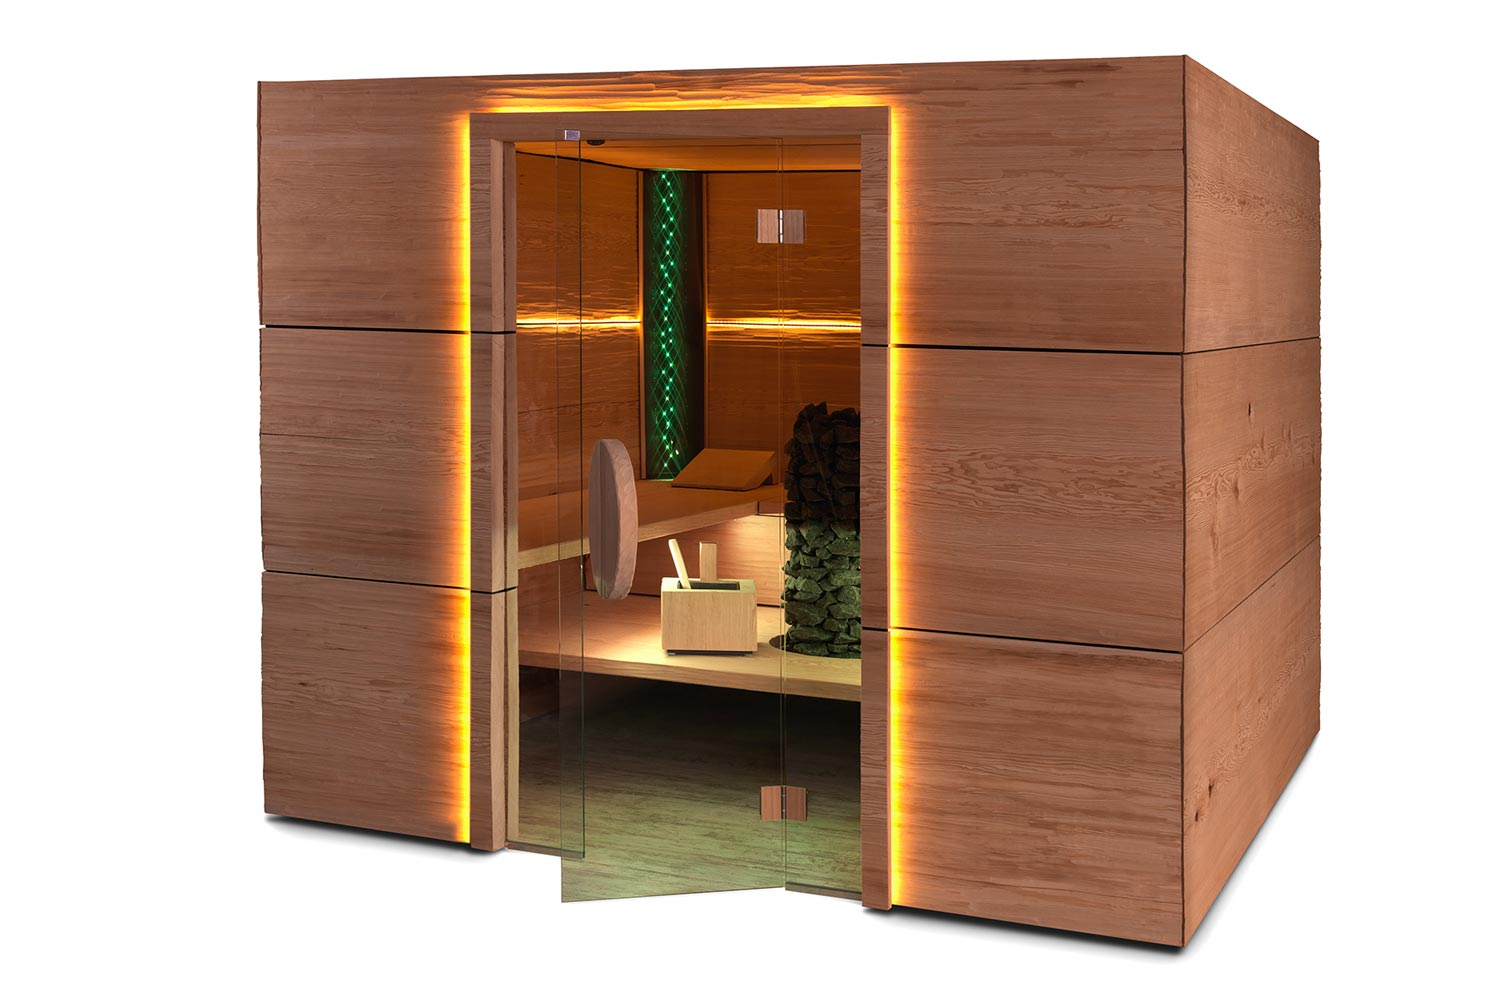 fechner erh lt 3 design auszeichnungen sowie ein g tesiegel f r ein saunadesign sauna zu hause. Black Bedroom Furniture Sets. Home Design Ideas